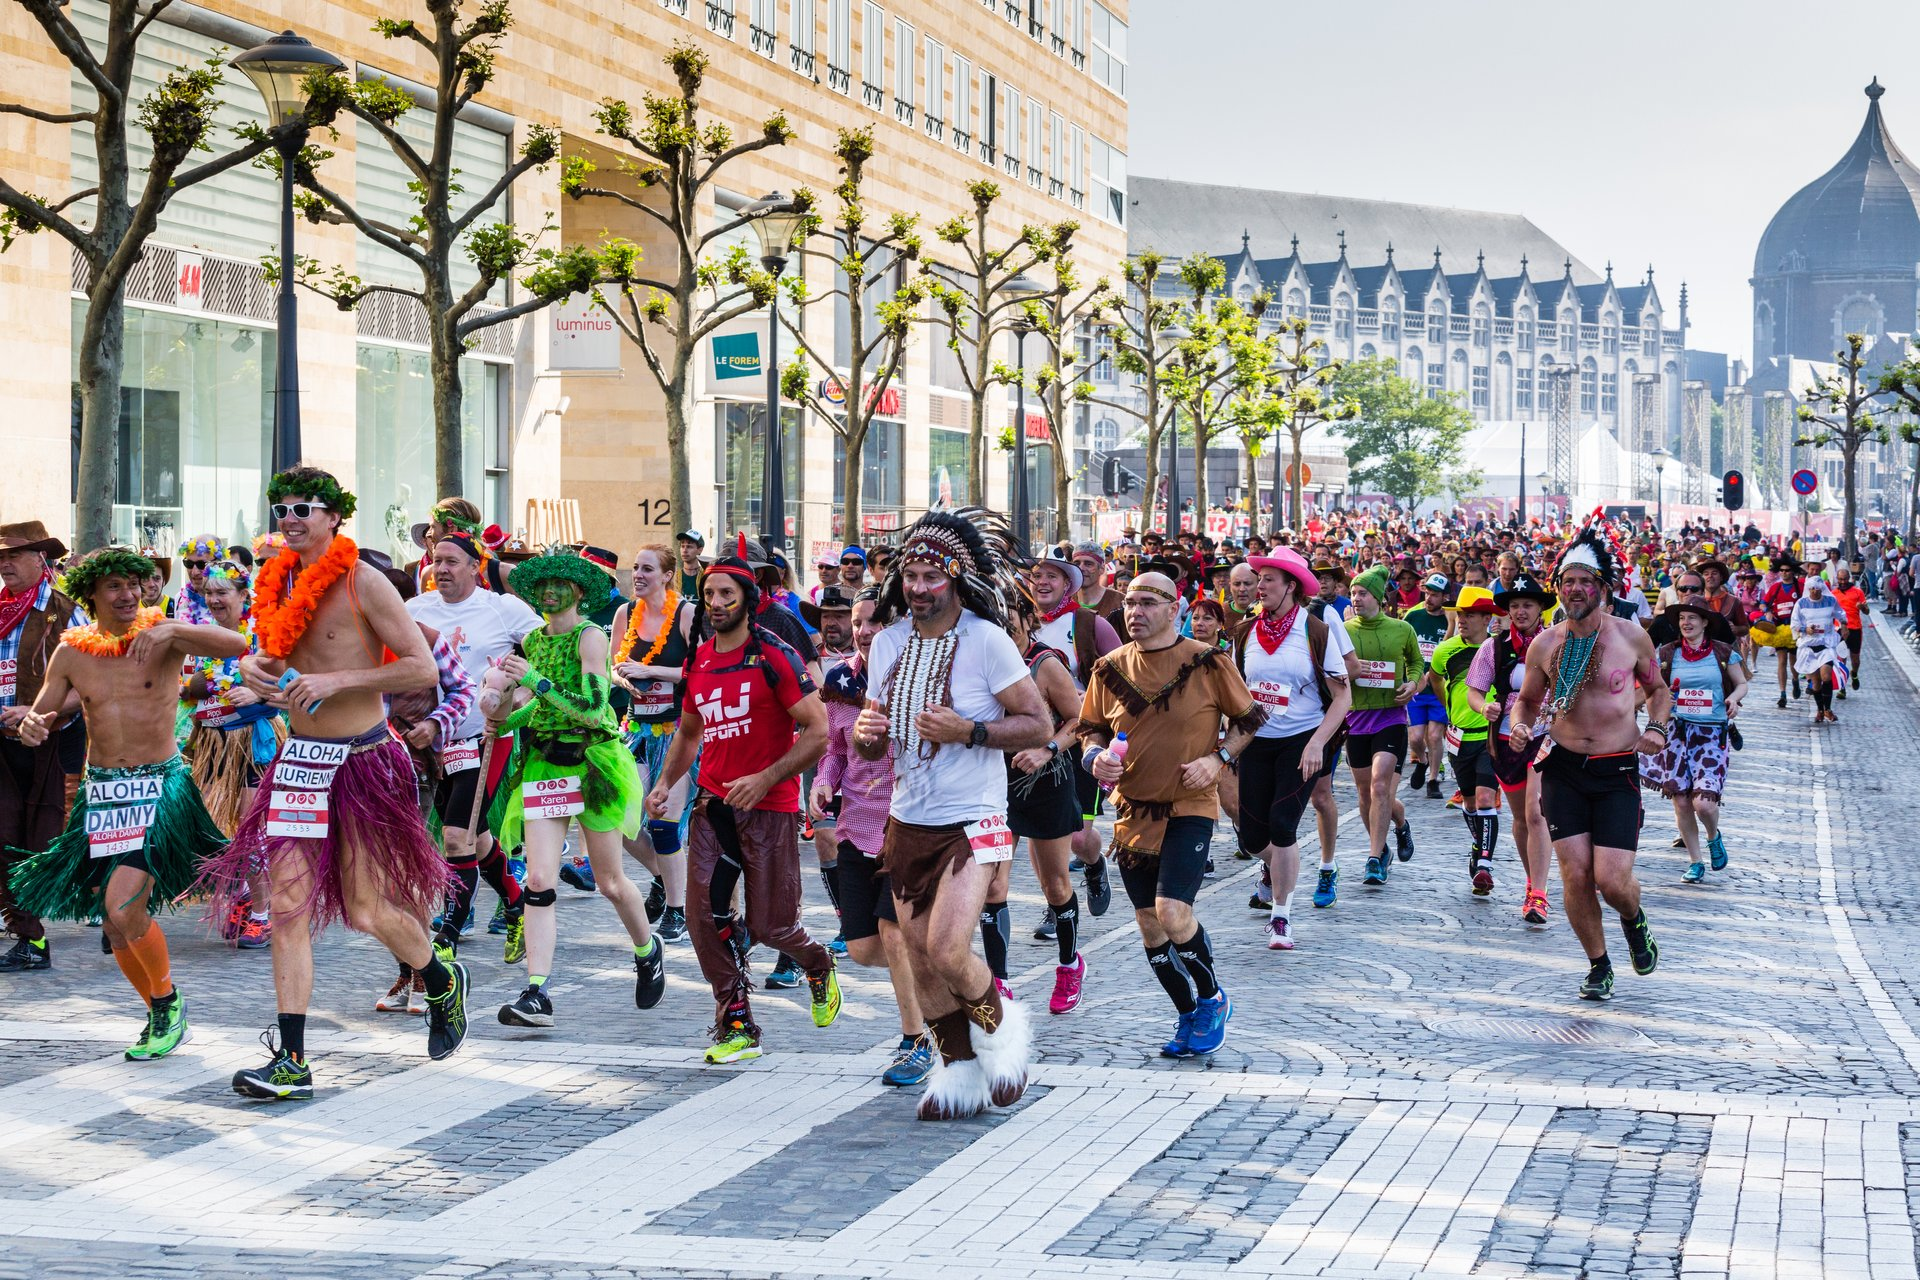 Beer Lovers' Marathon in Belgium 2020 - Best Time